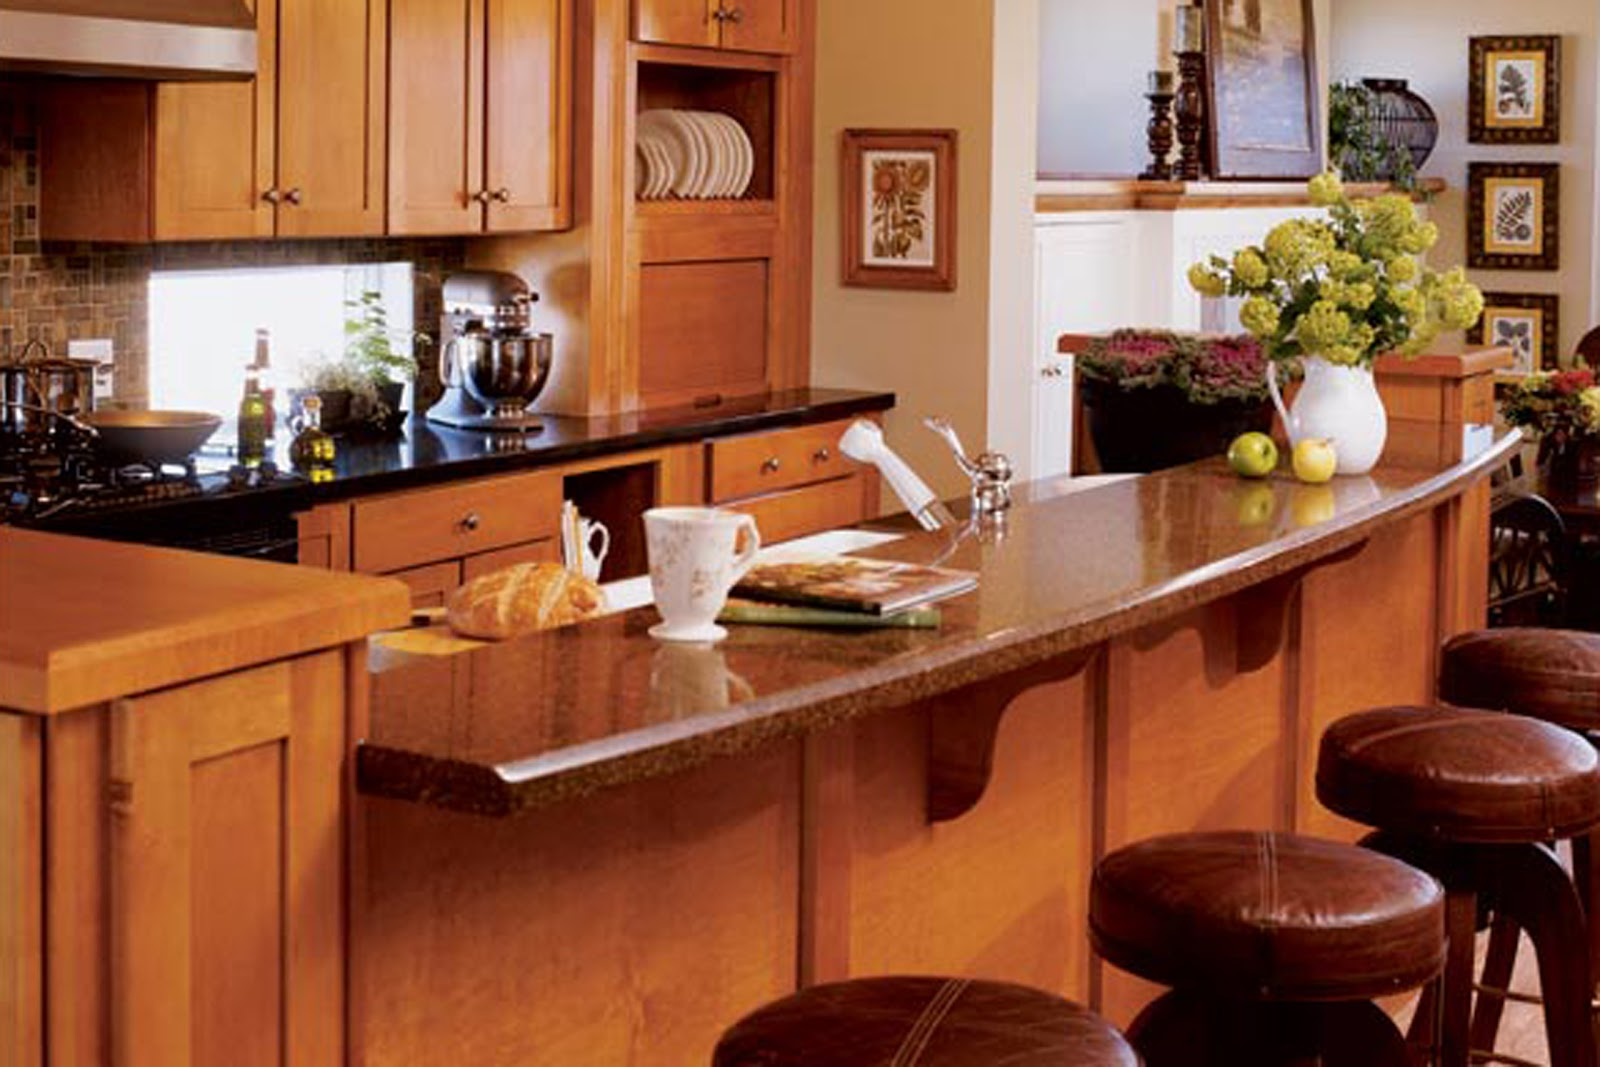 Simply elegant home designs blog february 2011 for Open kitchen designs photo gallery